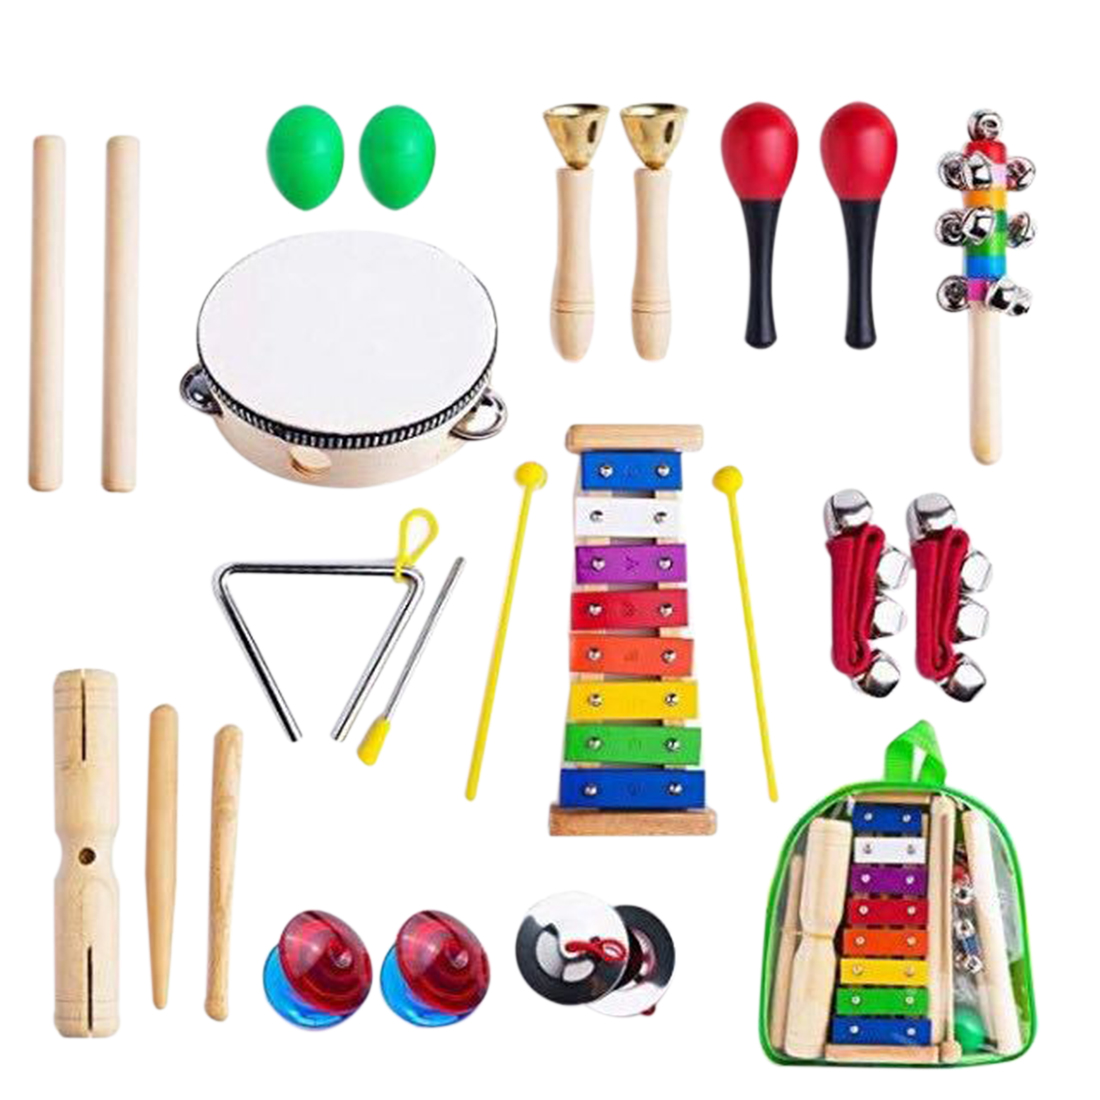 24Pcs Children Early Educational Musical Instrument Toys Carl for Musical Instruments Set for Children Learning Music Kits24Pcs Children Early Educational Musical Instrument Toys Carl for Musical Instruments Set for Children Learning Music Kits